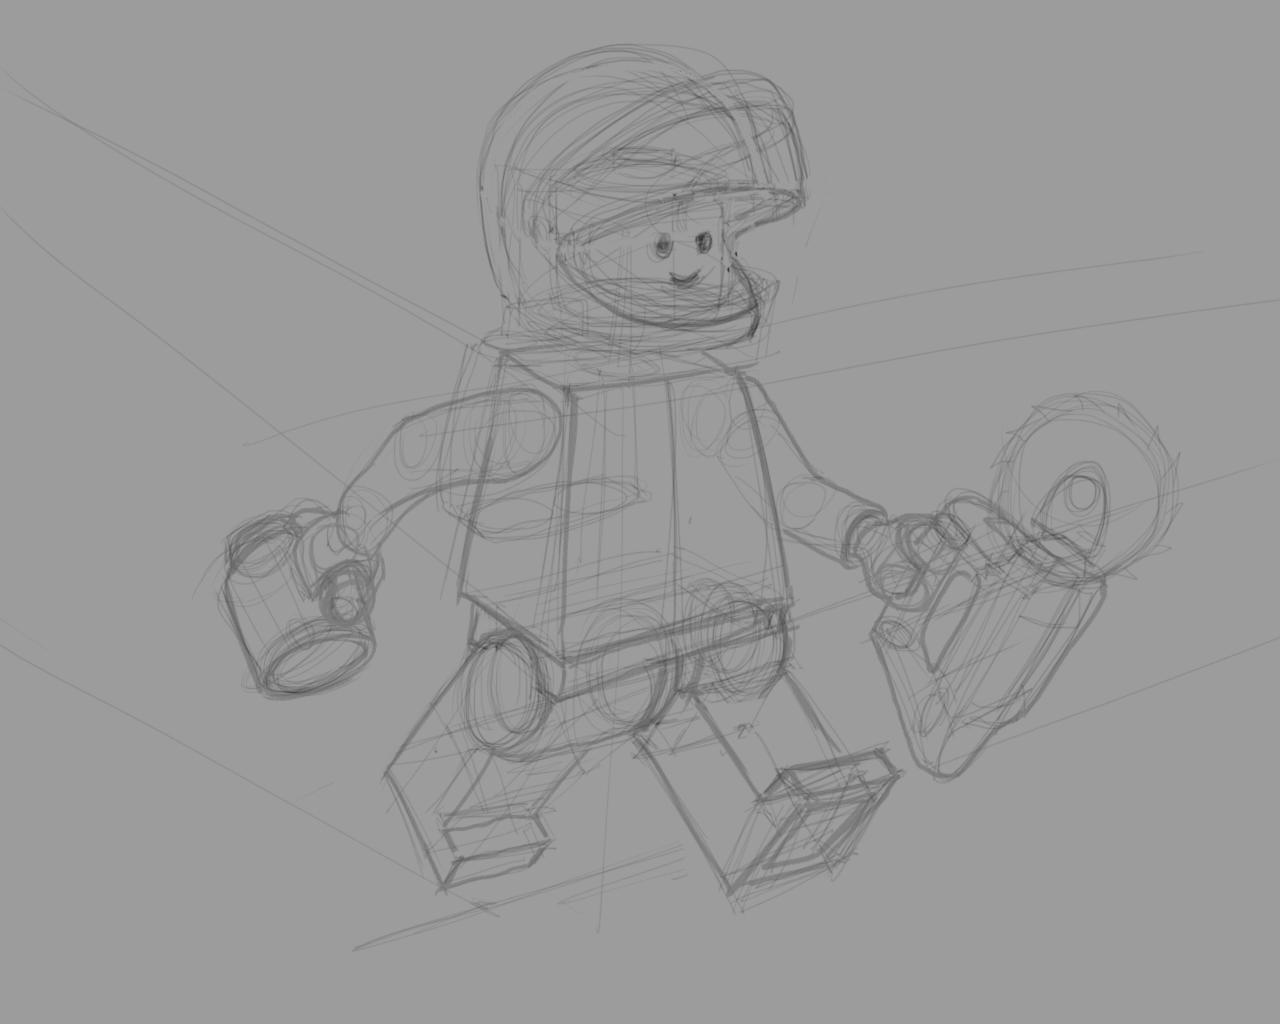 Real Astronaut - image 2 - student project